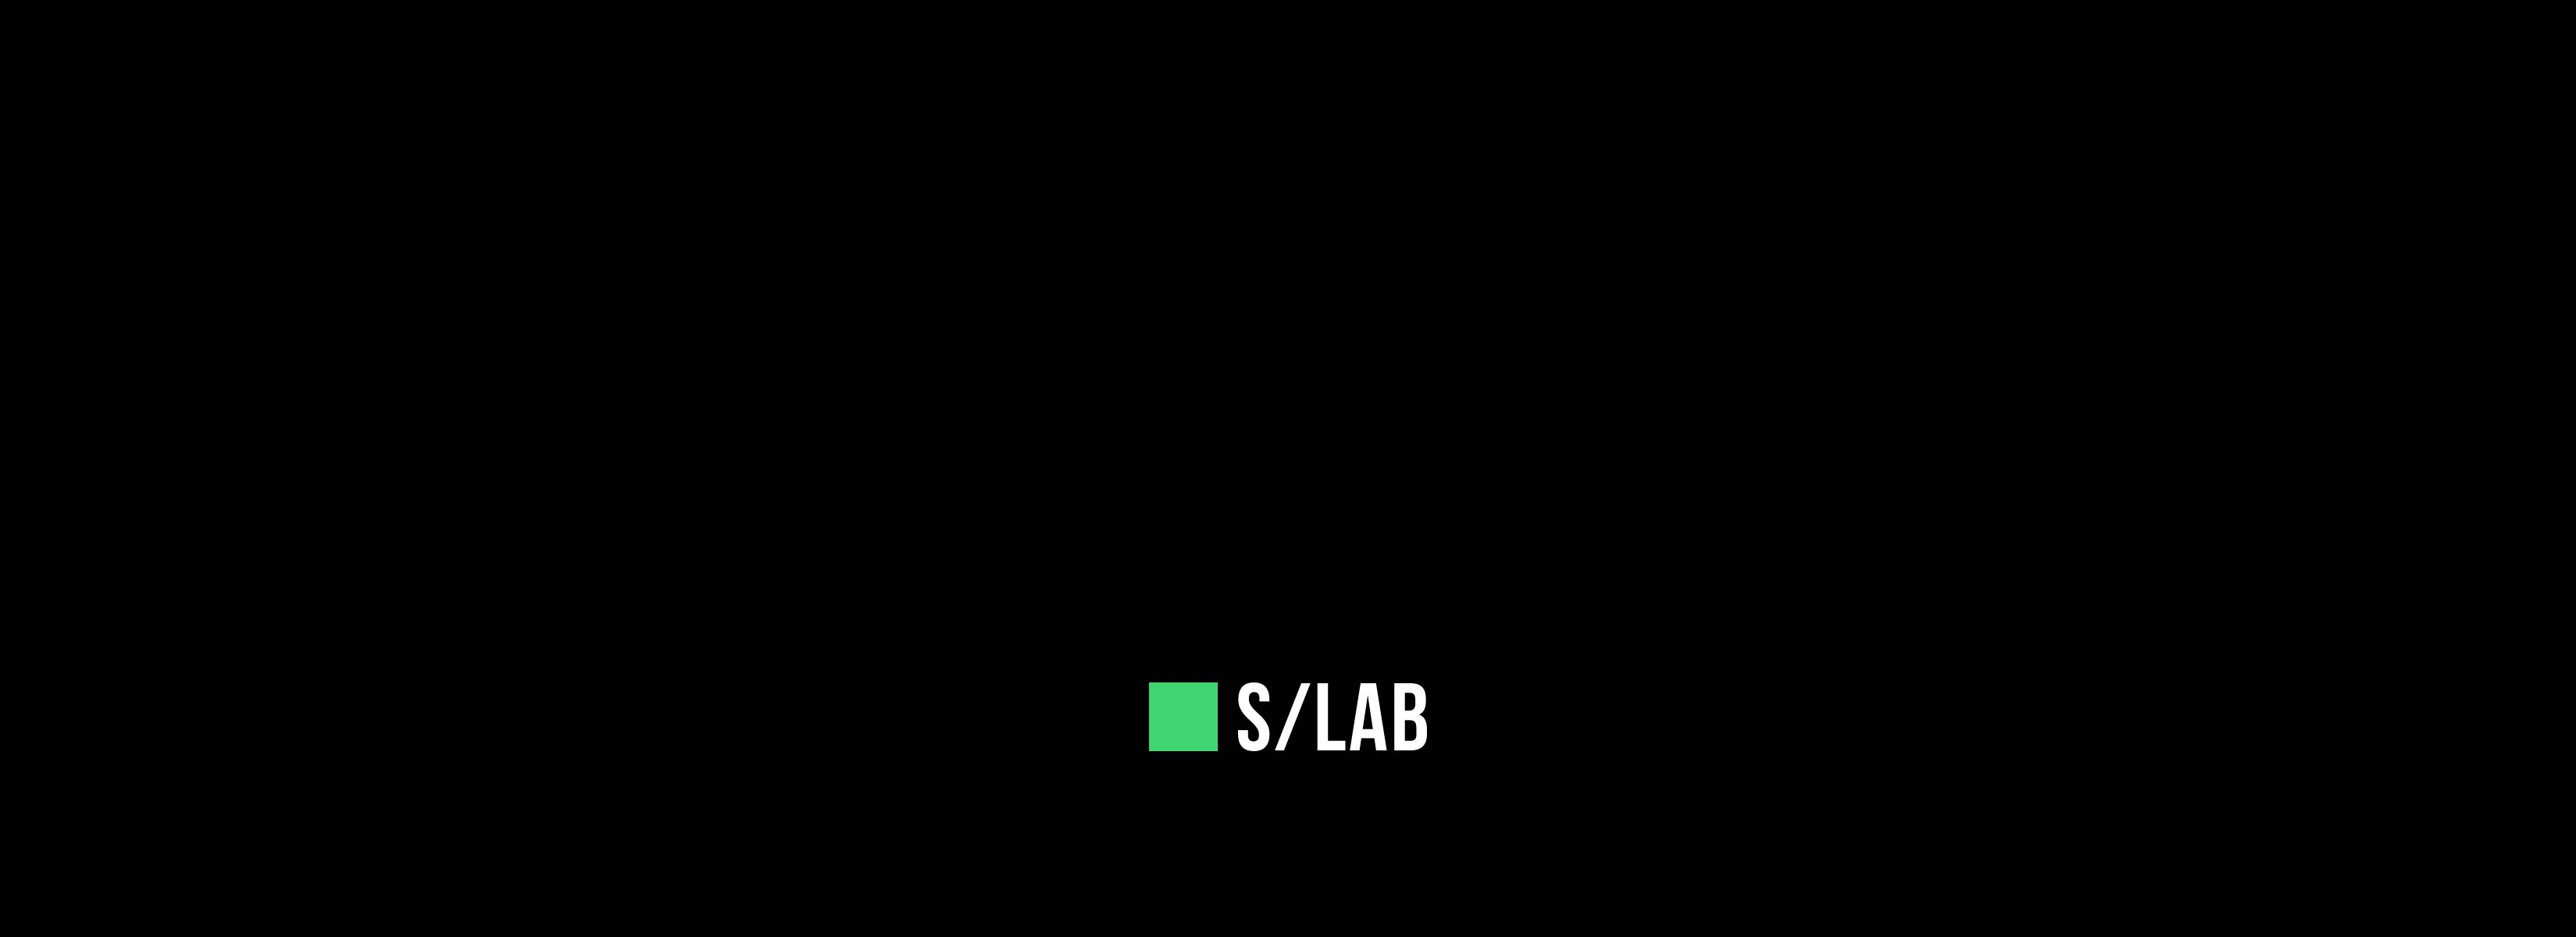 Skcript Announces S/LAB - A nested Startup Within Skcript